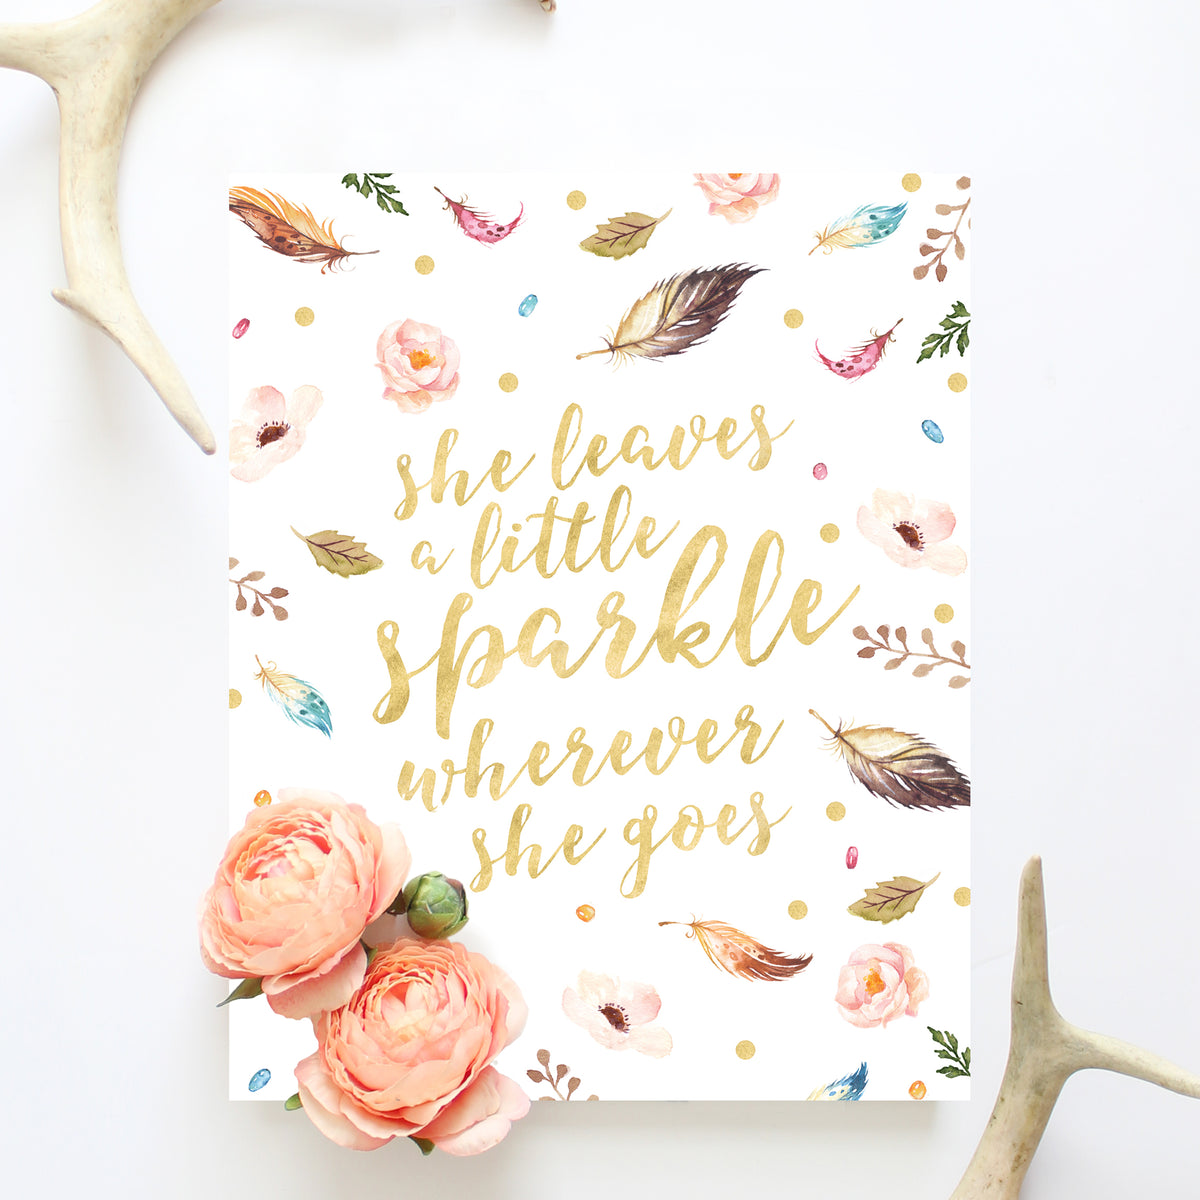 photo relating to She Leaves a Little Sparkle Wherever She Goes Free Printable identified as Boho Nursery Artwork - She Leaves A Minimal Sparkle Any place She Goes